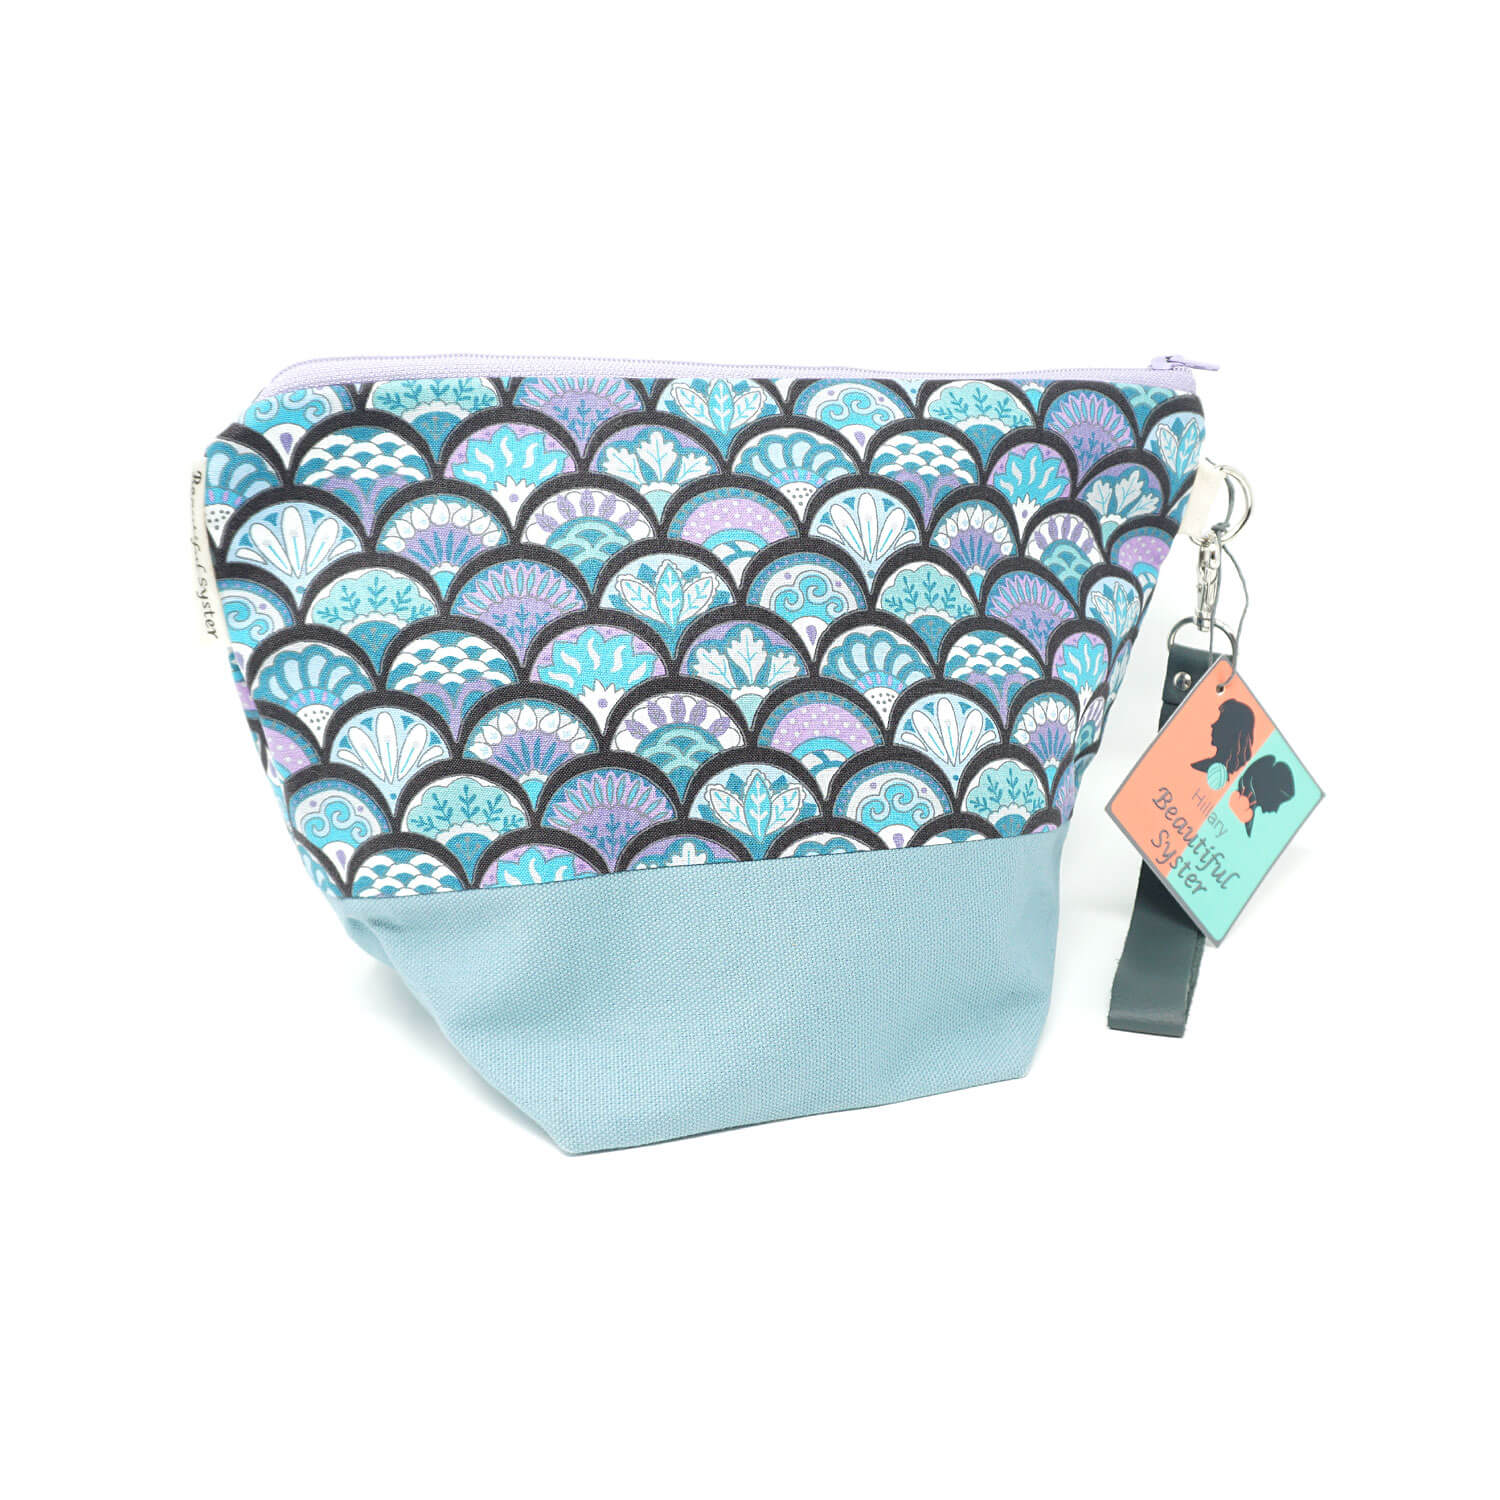 Beautiful Syster Hillary zipped project bag with mermaid scales design. Bag is shown standing up.